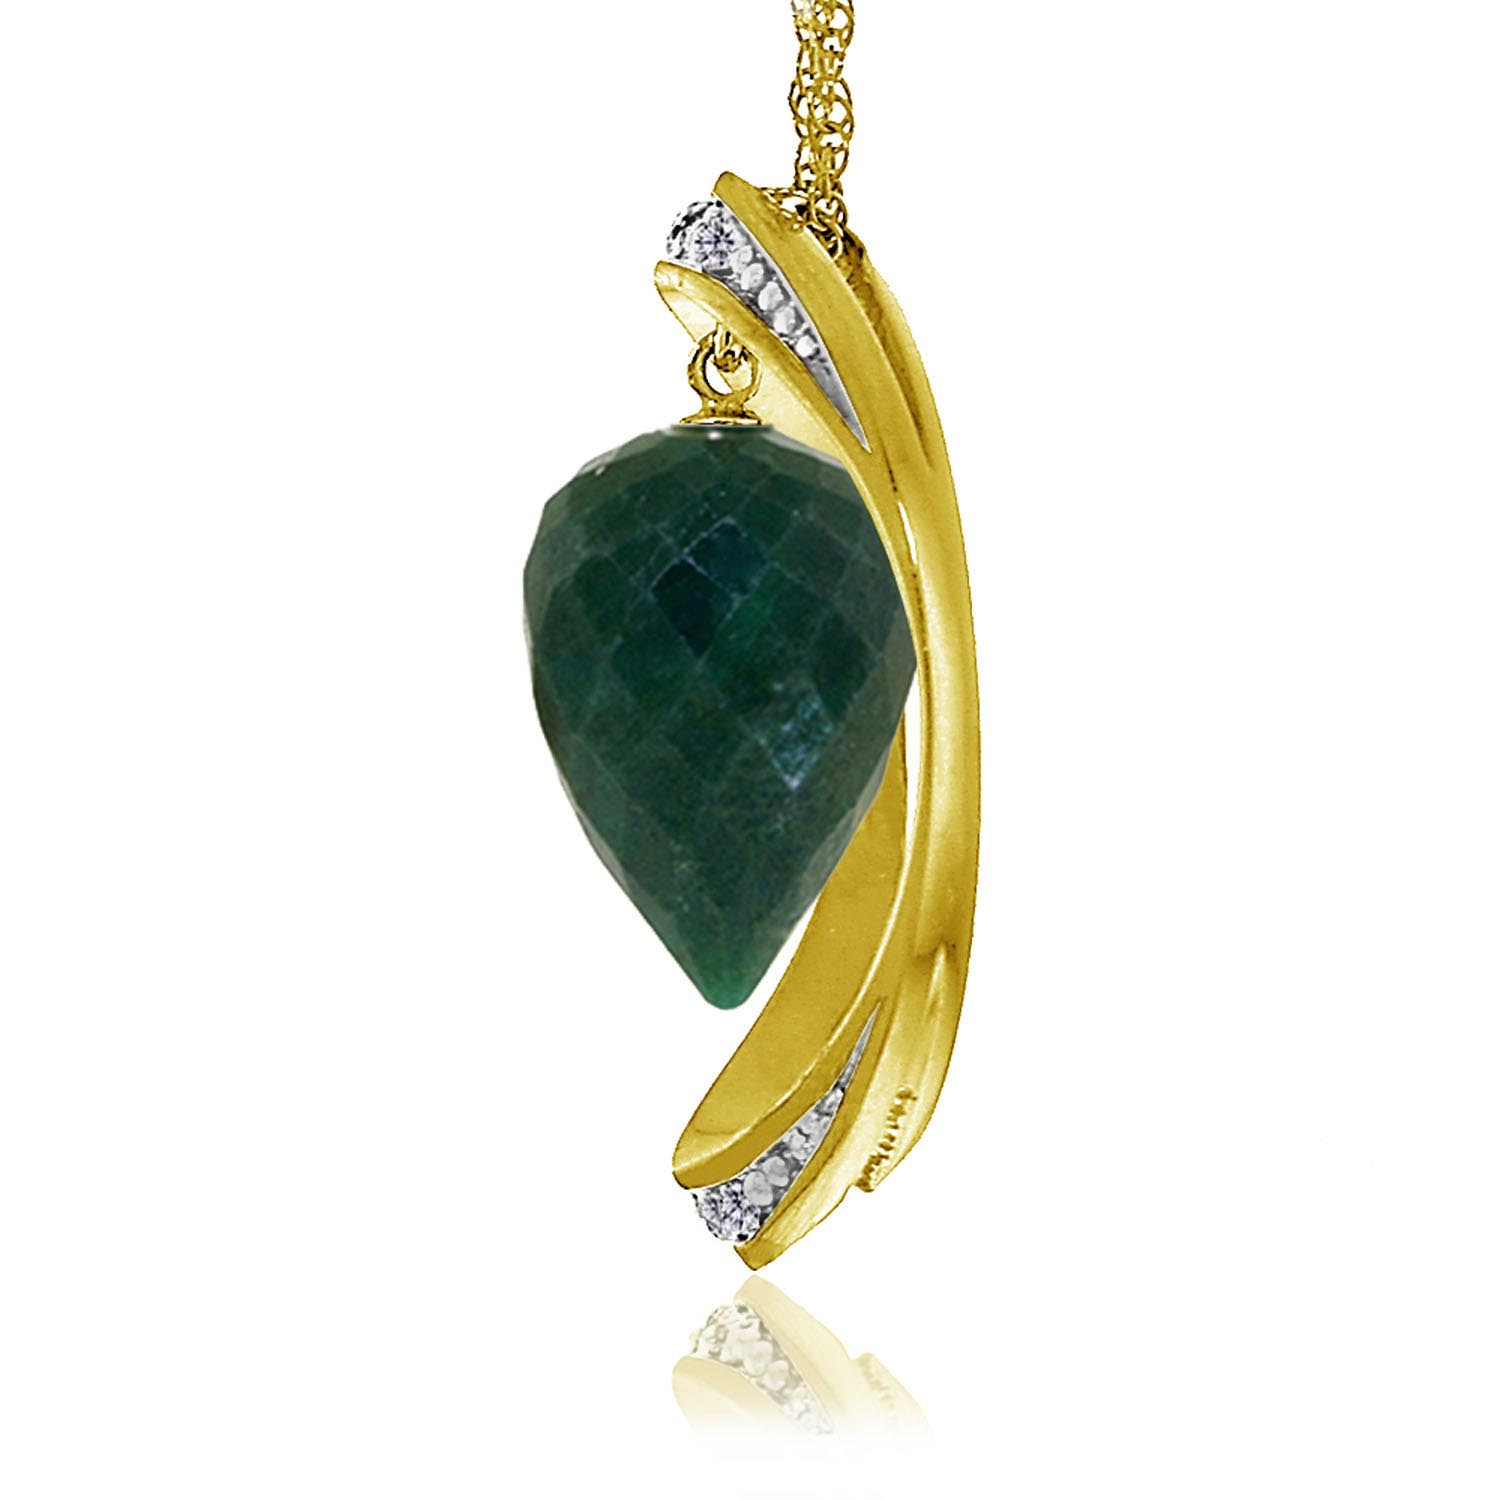 Emerald & Diamond Drop Pendant Necklace in 9ct Gold